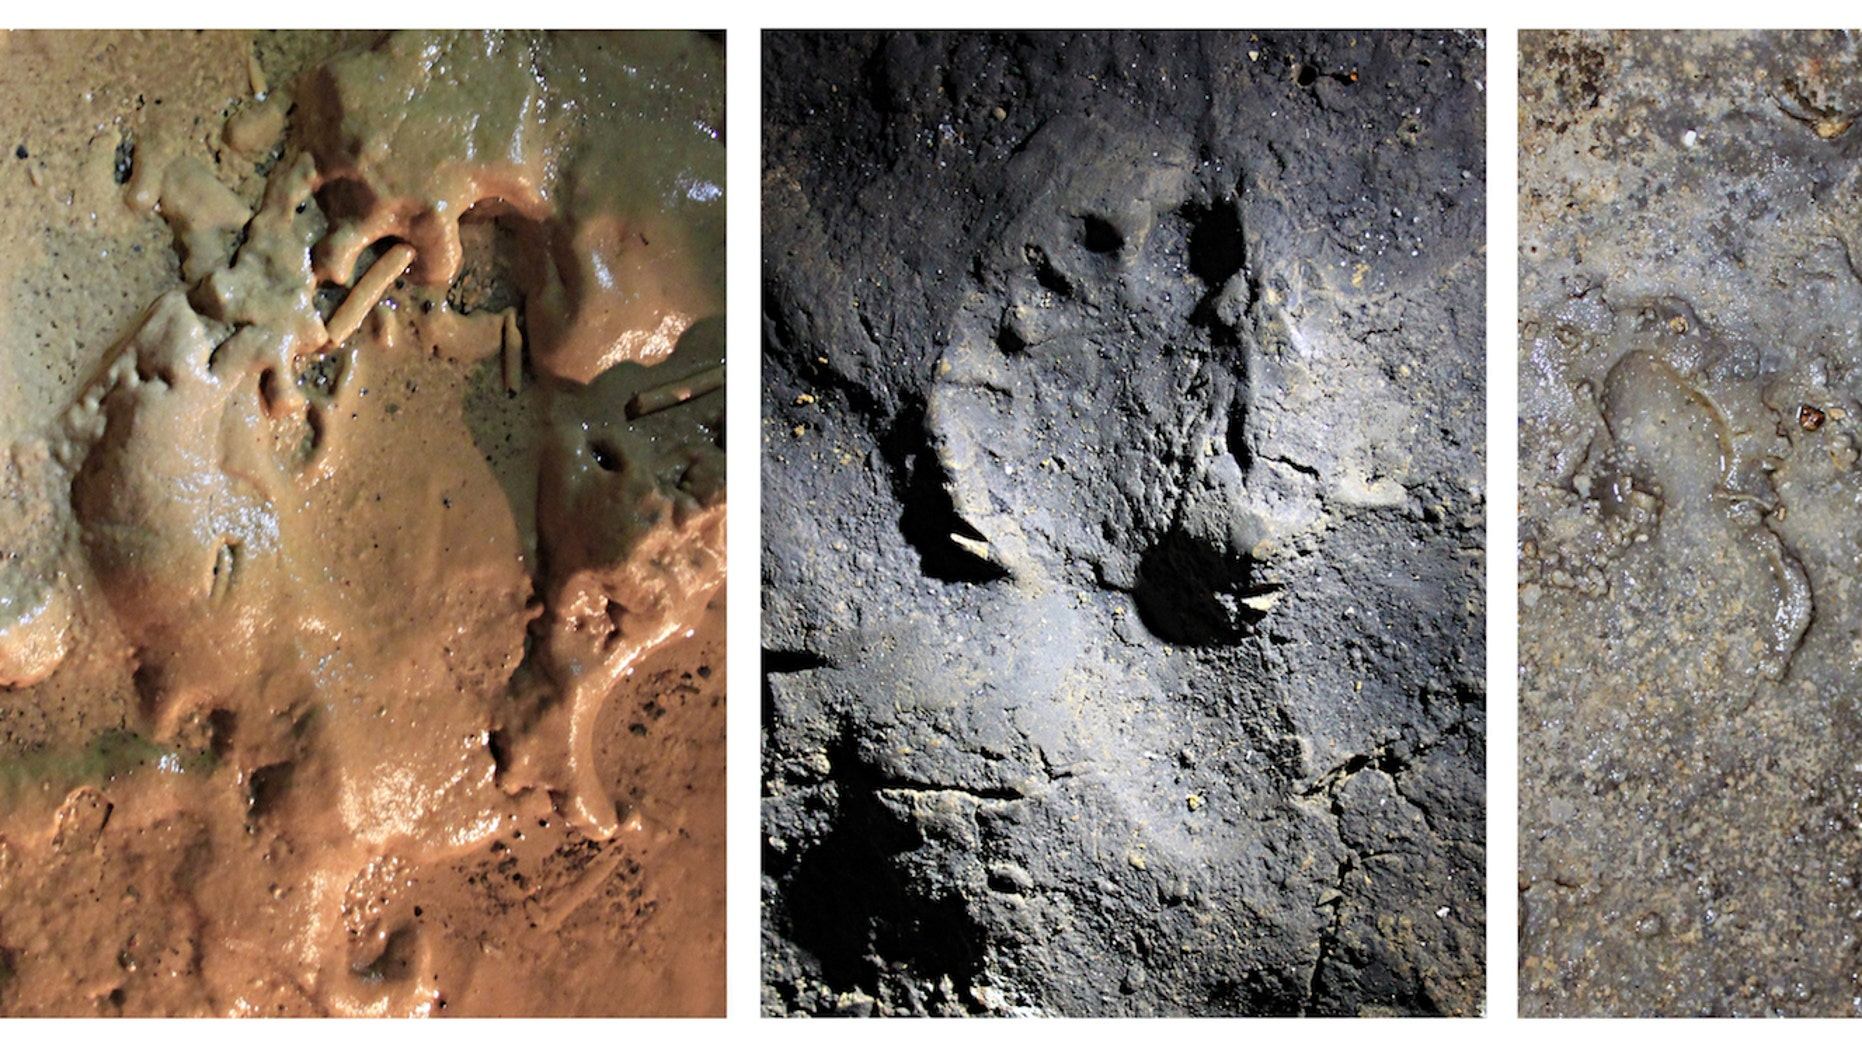 Researchers found a sum of 180 tellurian footprints and traces that were done about 14,000 years ago in a cavern in northern Italy. Here are 3 of a footprints, done on opposite surfaces within a cave.